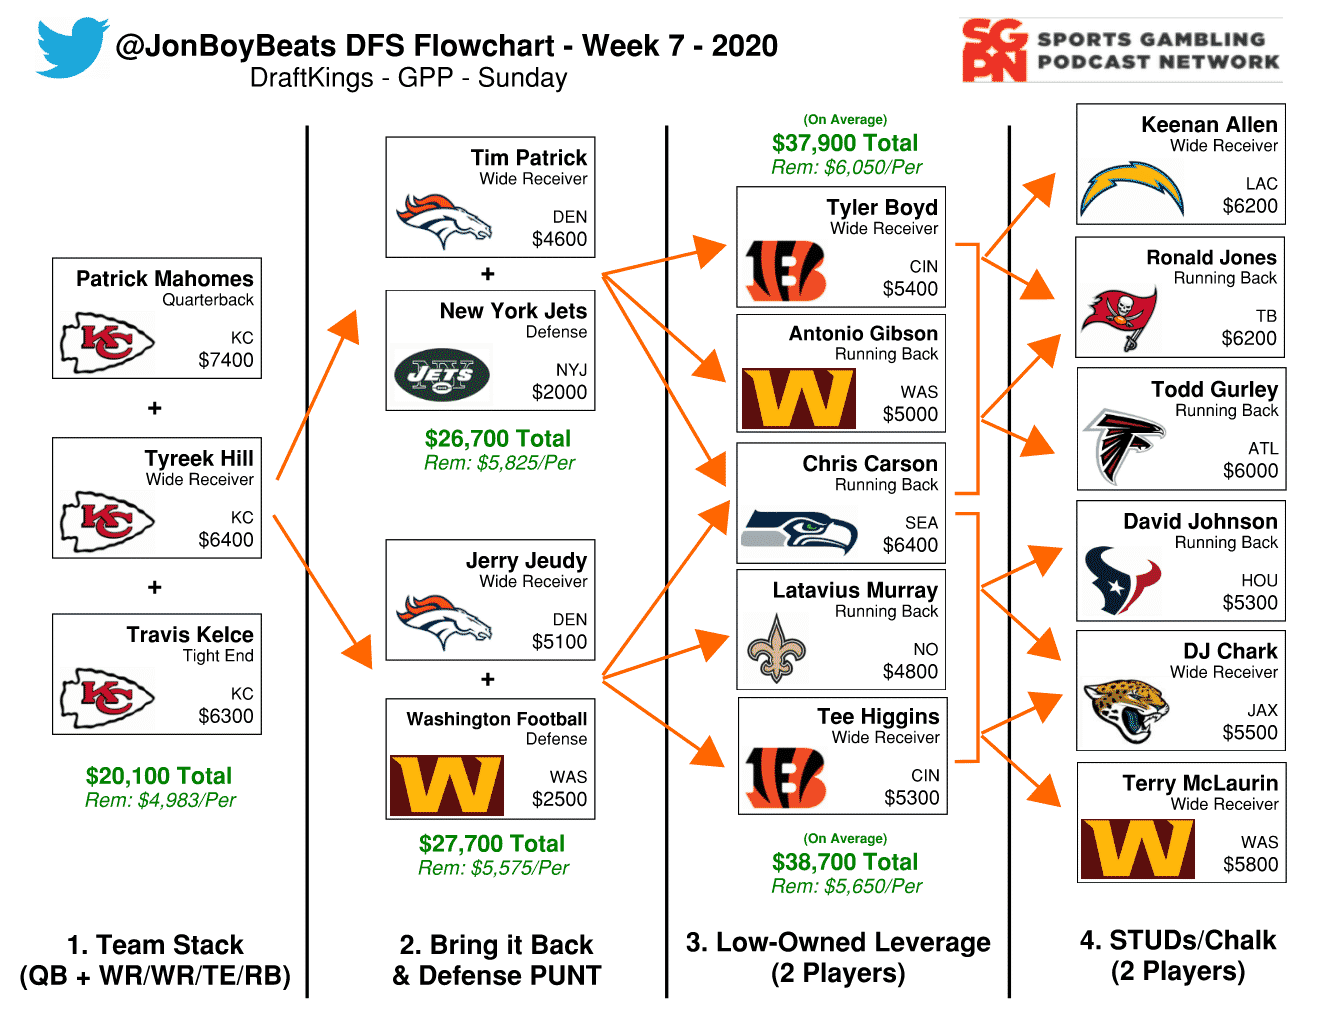 NFL DFS Flowchart Week 7 DraftKings GPP